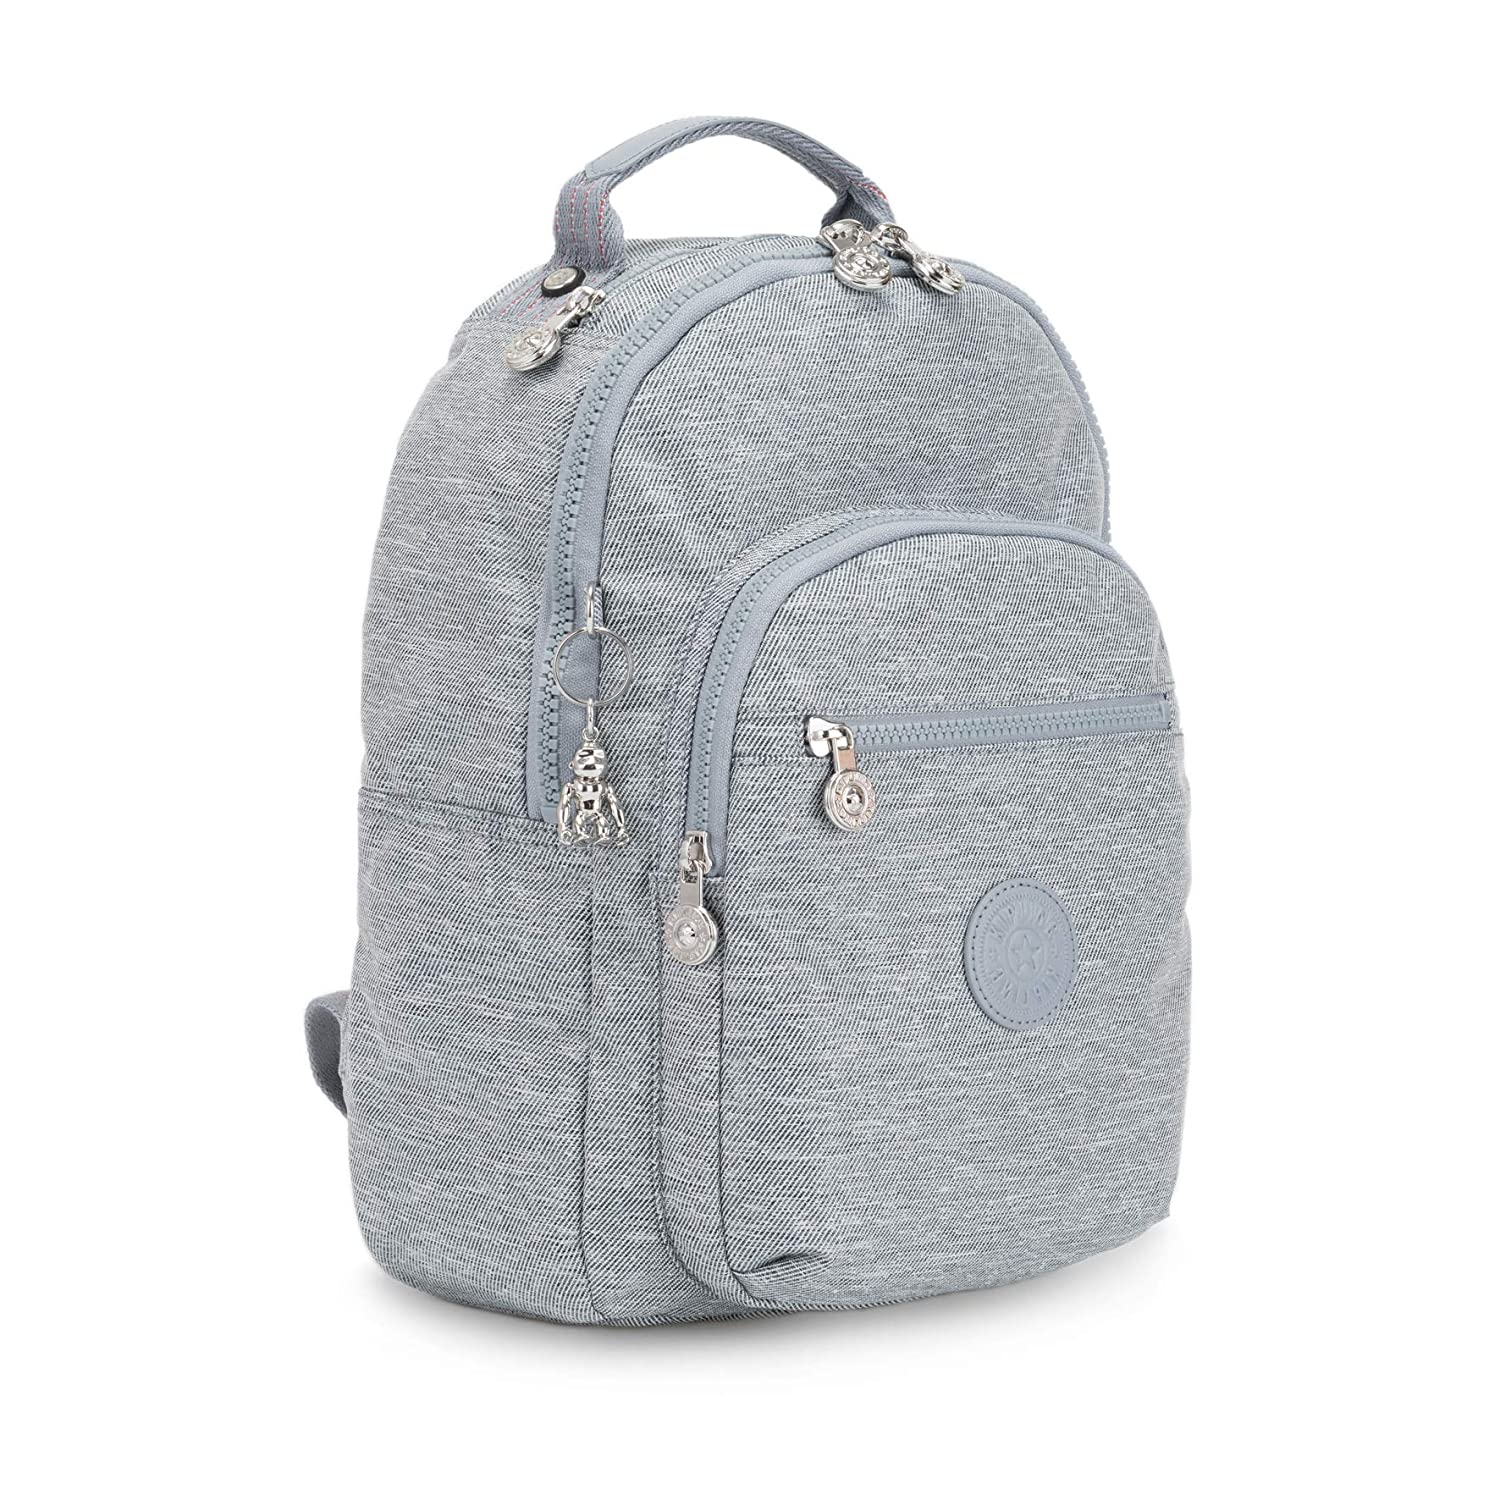 Kipling Clas Seoul S Backpack in Cool Denim